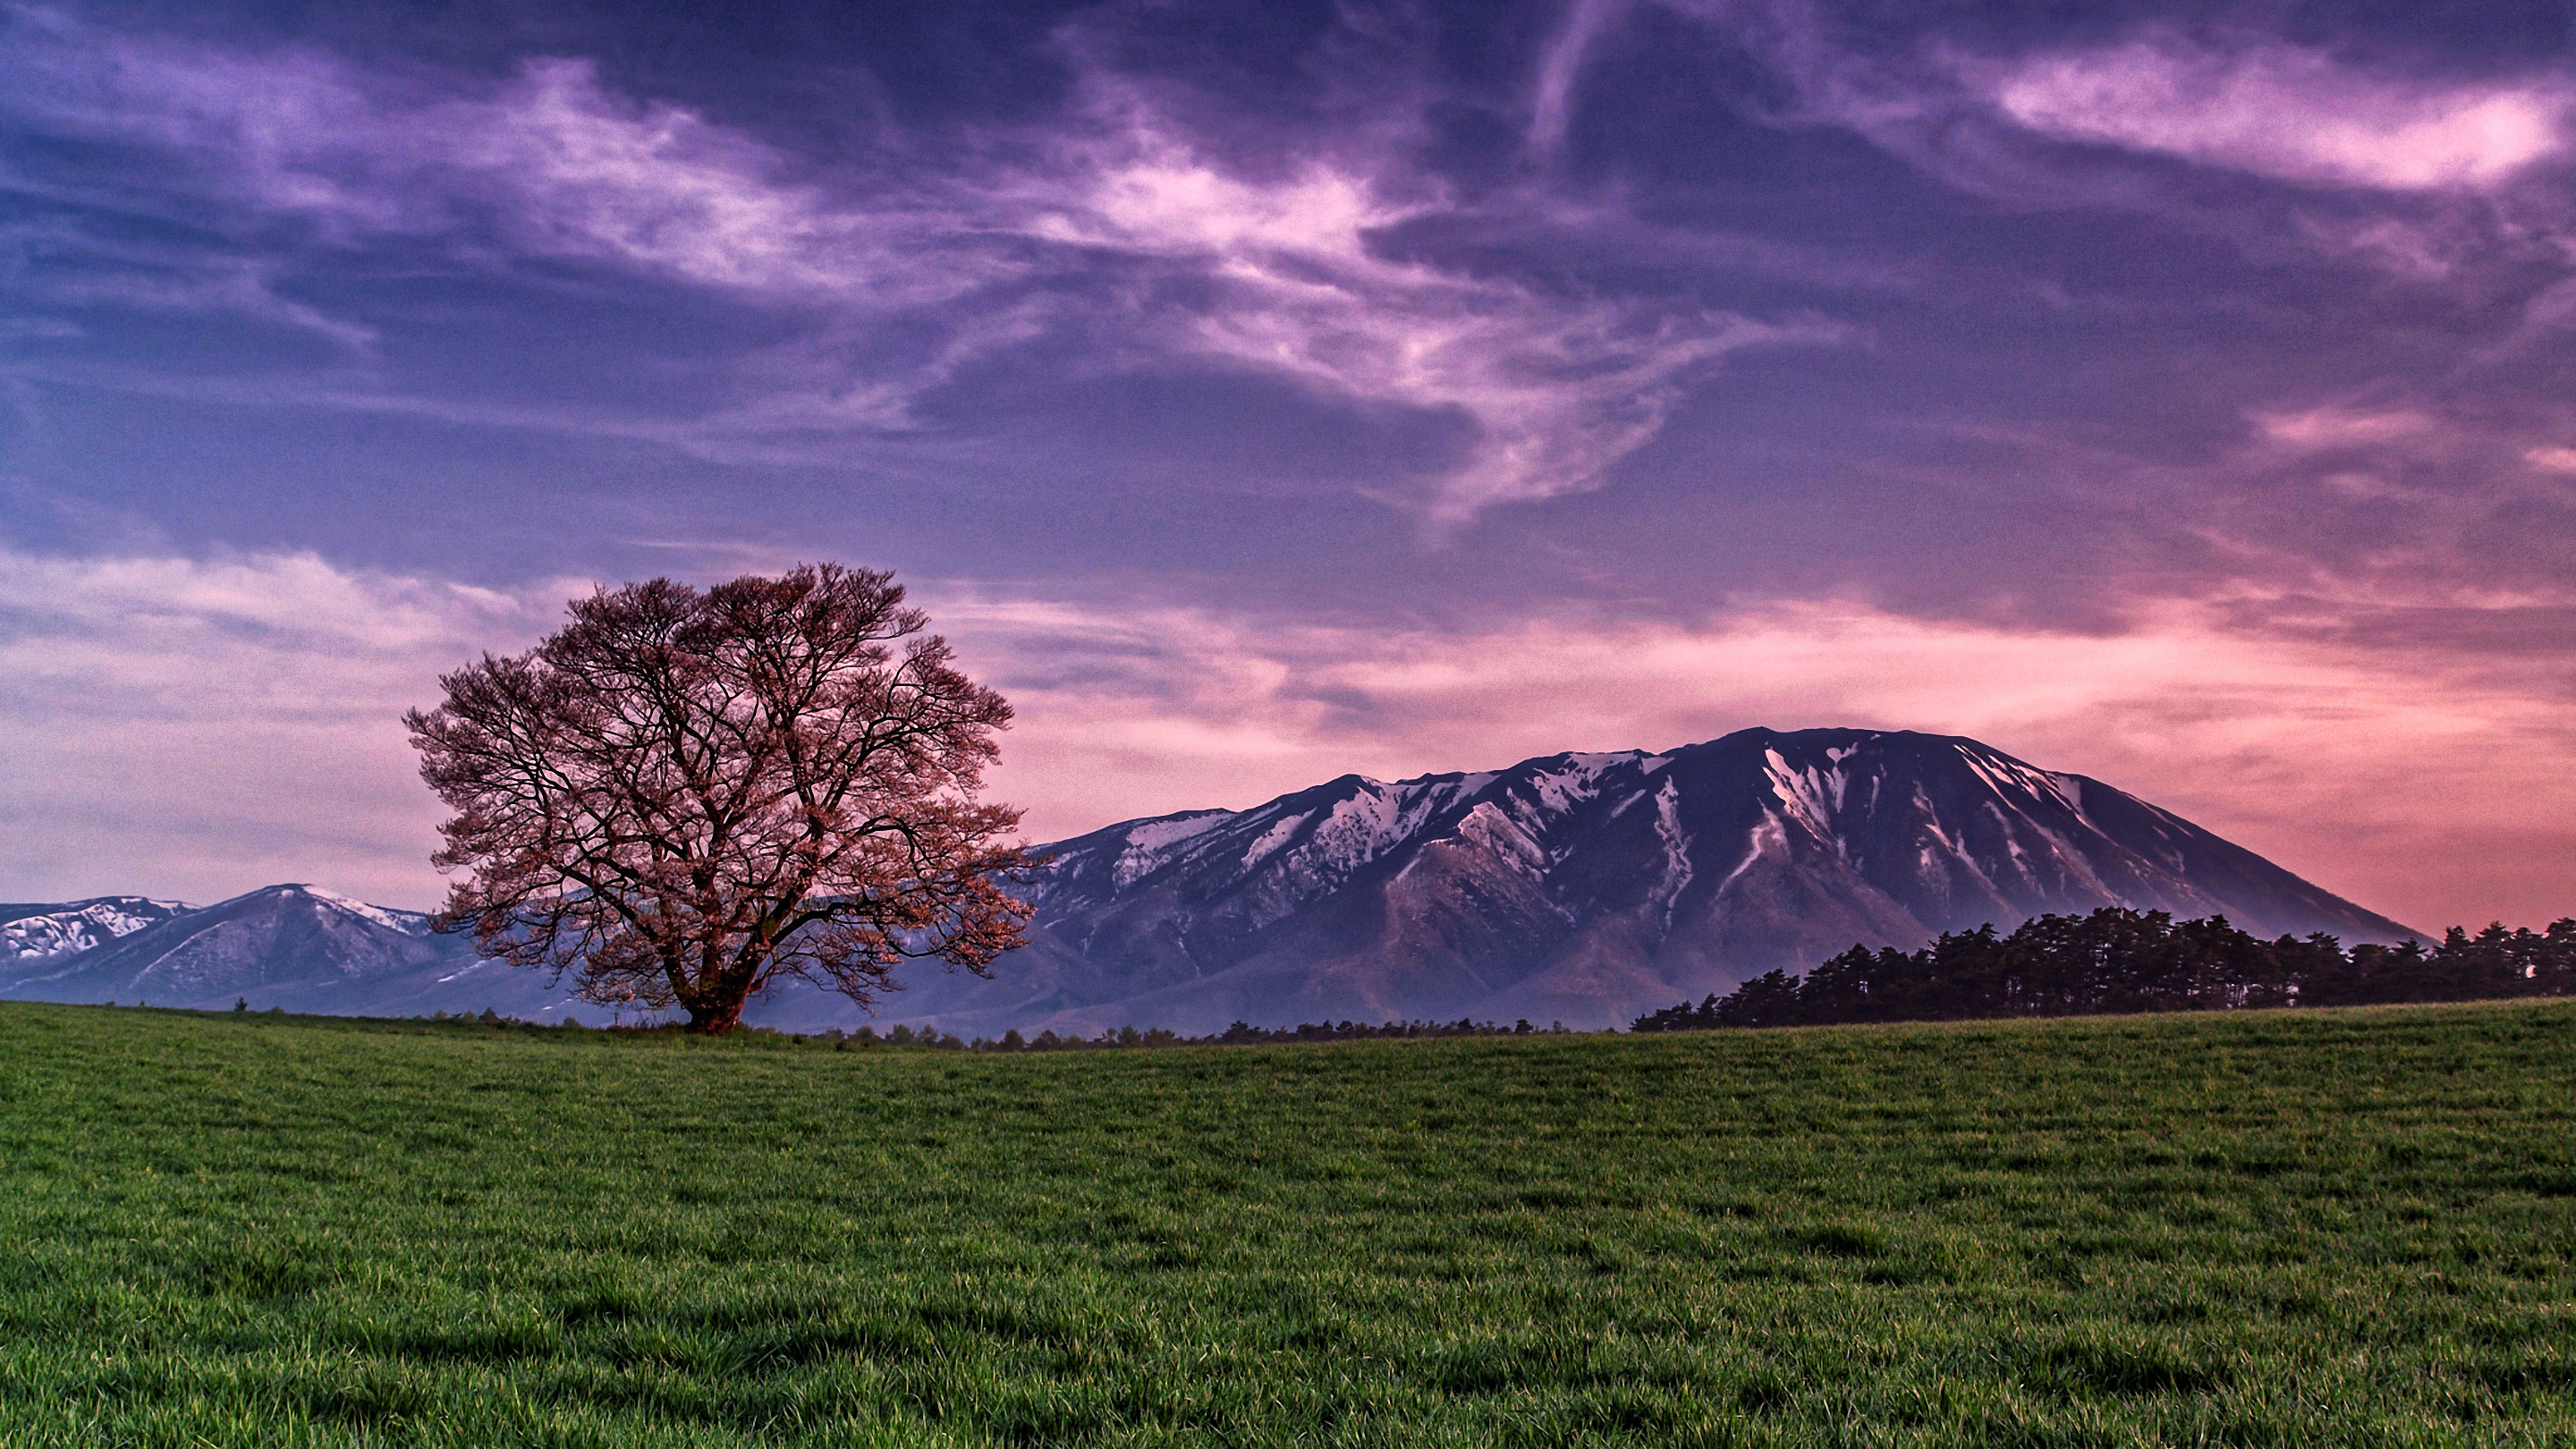 Lonely tree hd wallpaper background image 2880x1620 id 656348 wallpaper abyss - 2880x1620 wallpaper ...